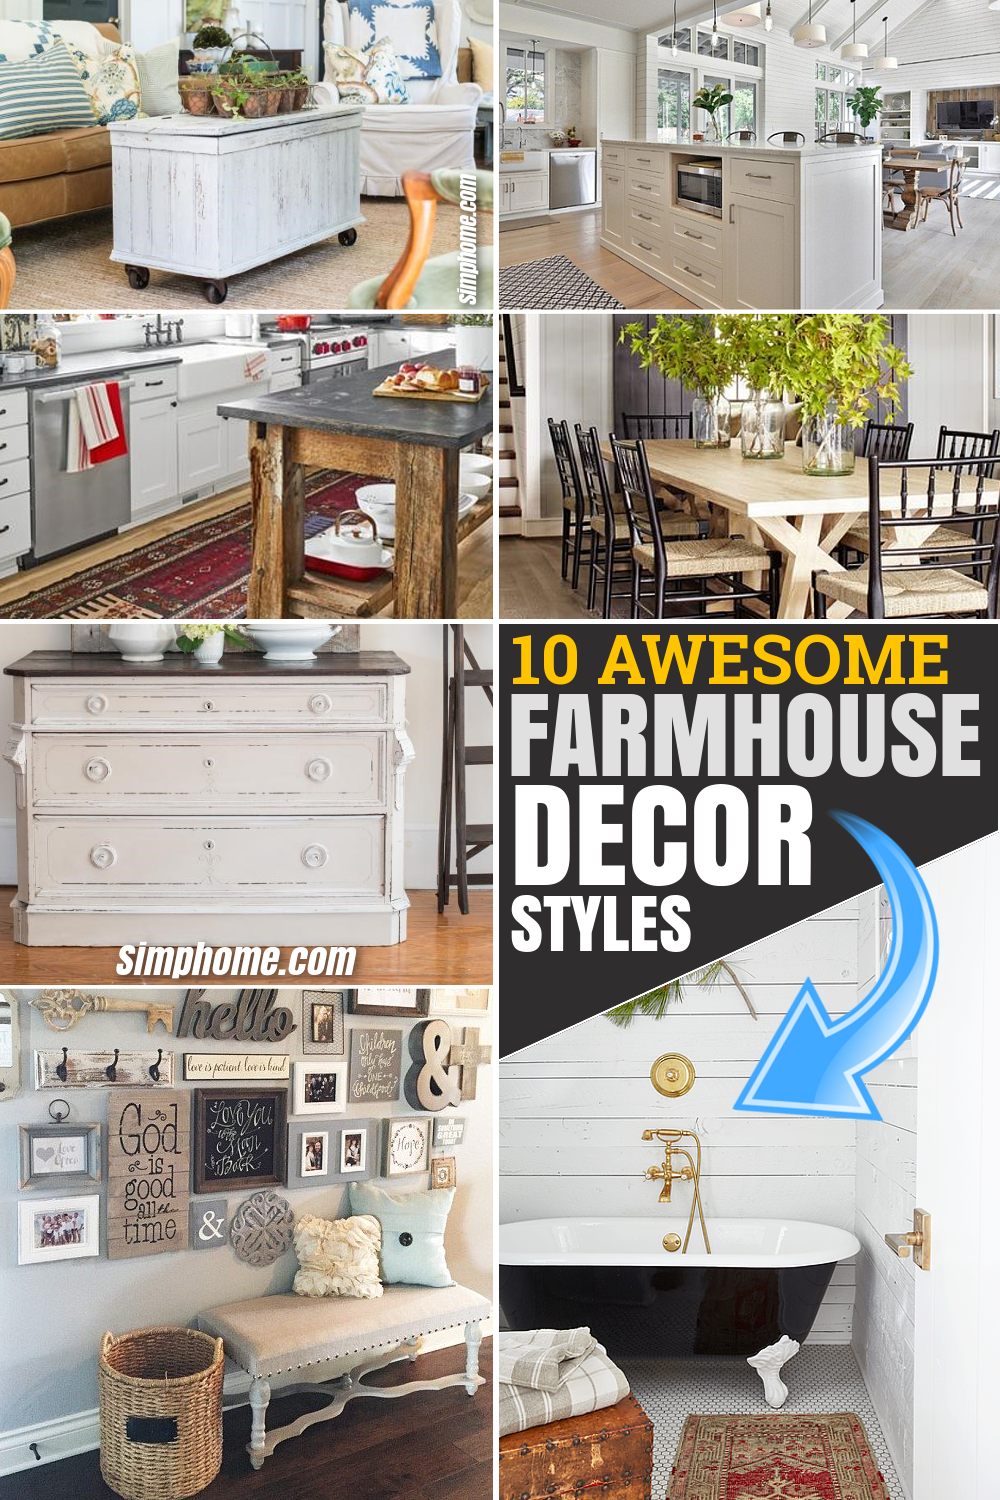 10 Awesome Farmhouse Decor Style Deserve Your Attention via Simphome.com Pinterest Featured image